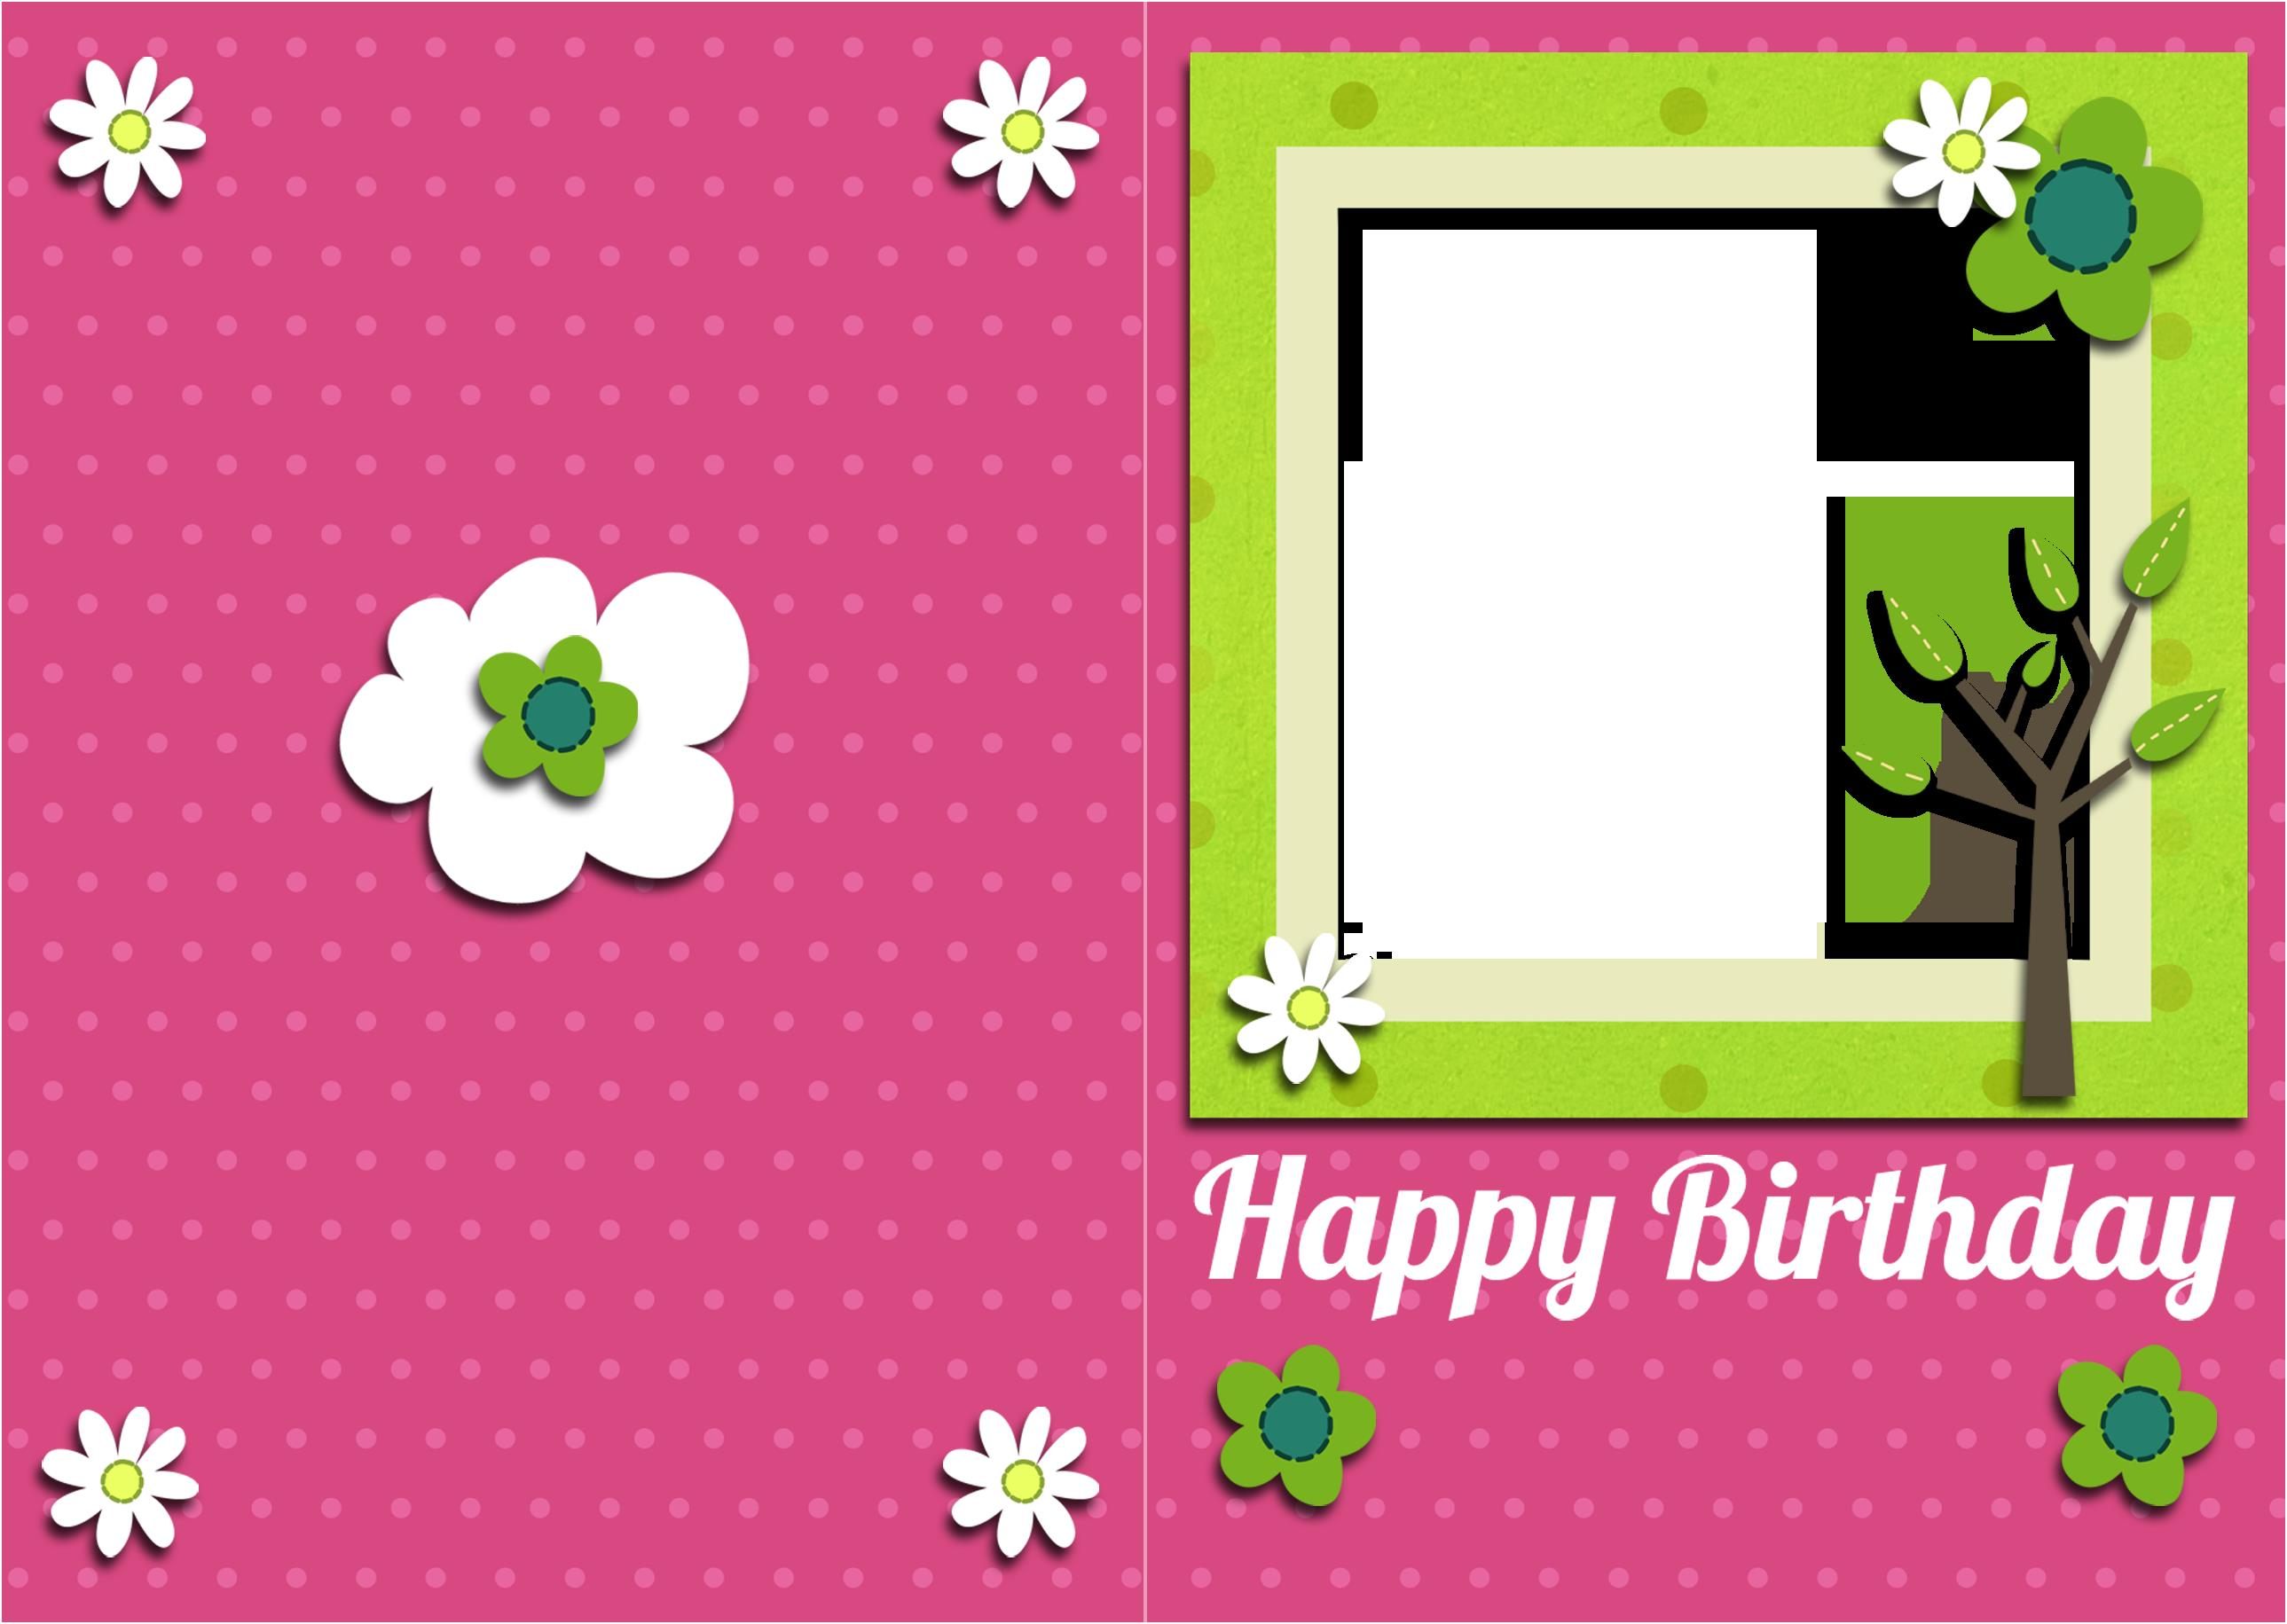 birthday card design template free ; 18Th-Birthday-Cards-Printable-is-one-of-the-best-idea-for-you-to-make-your-own-birthday-Card-design-13